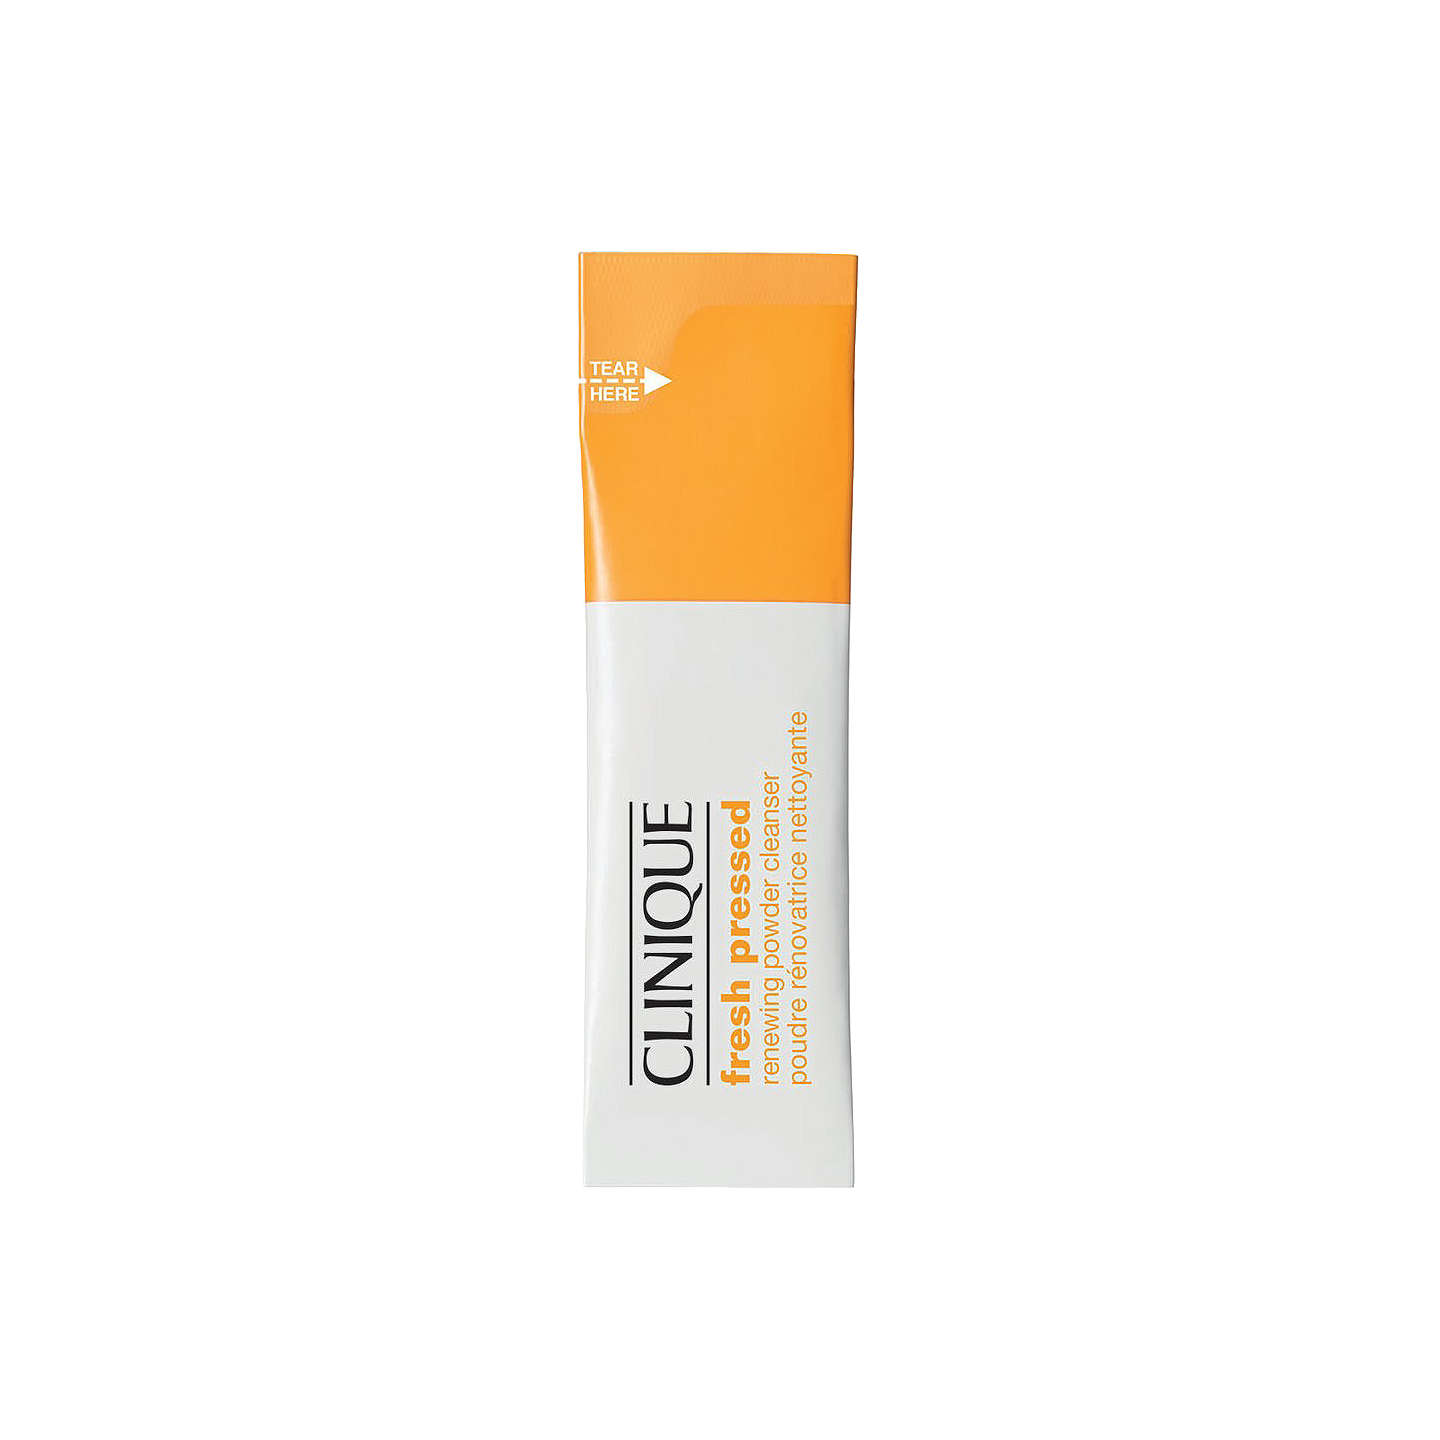 BuyClinique Fresh Pressed Renewing Powder Cleanser with Pure Vitamin C, 28 x 0.5g Online at johnlewis.com